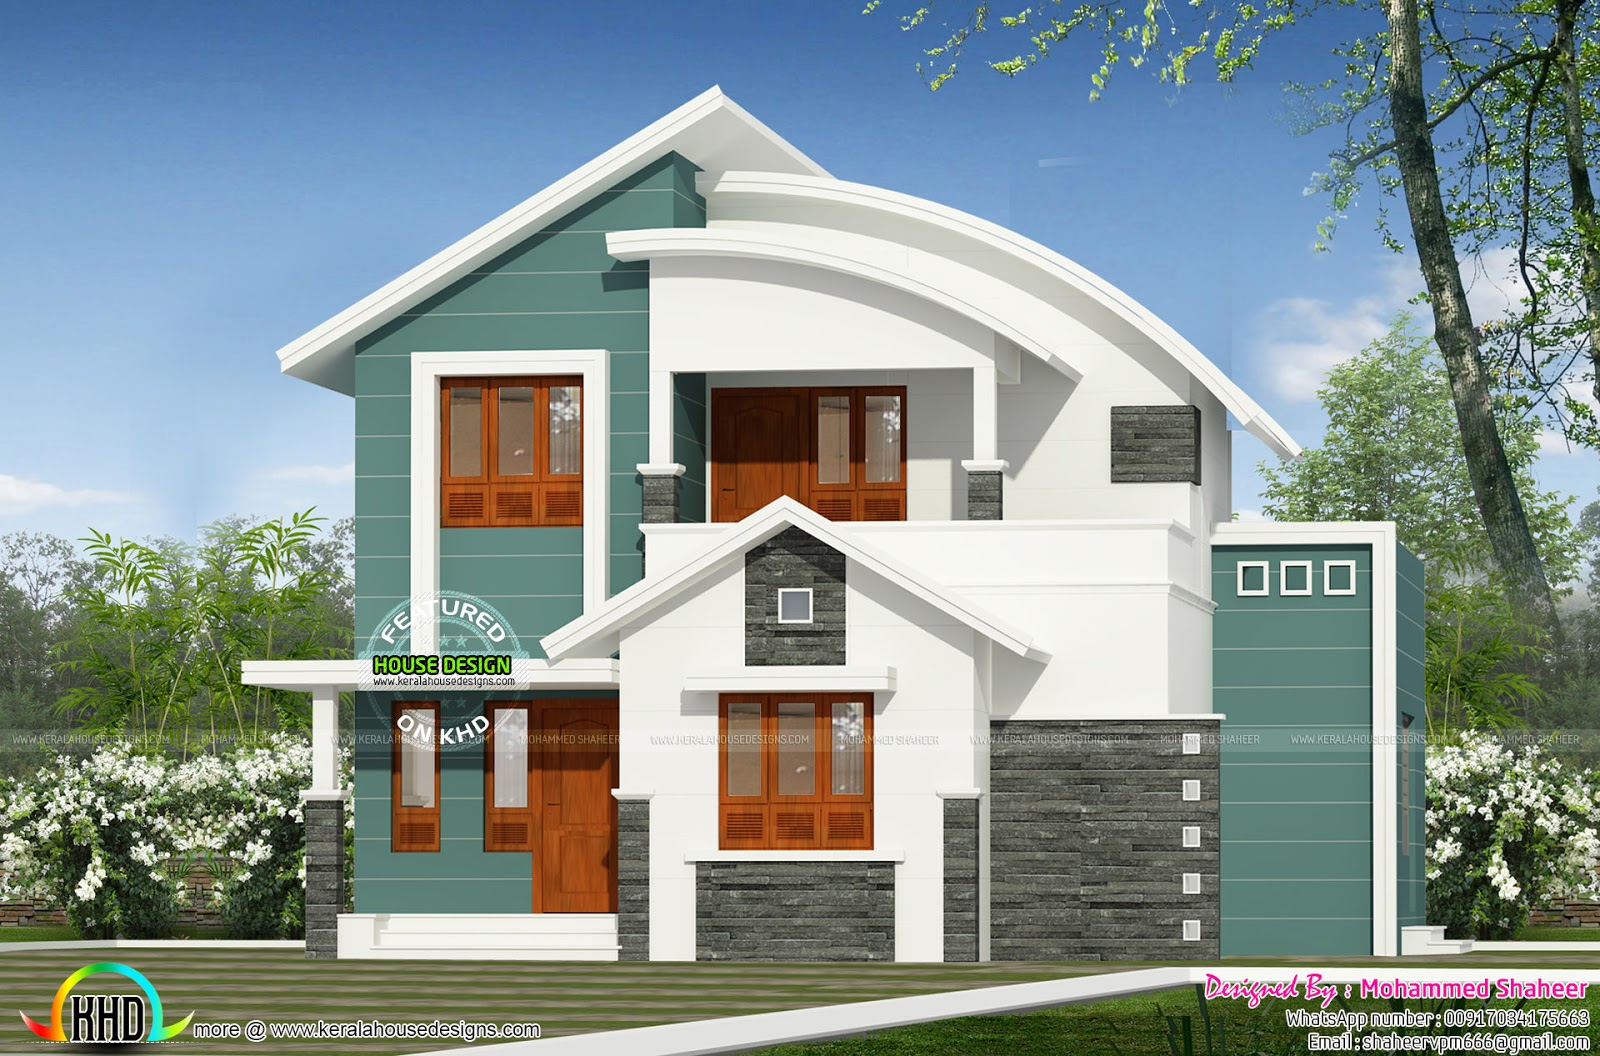 Modern curved roof mix home kerala home design and floor for Curved roof house plans